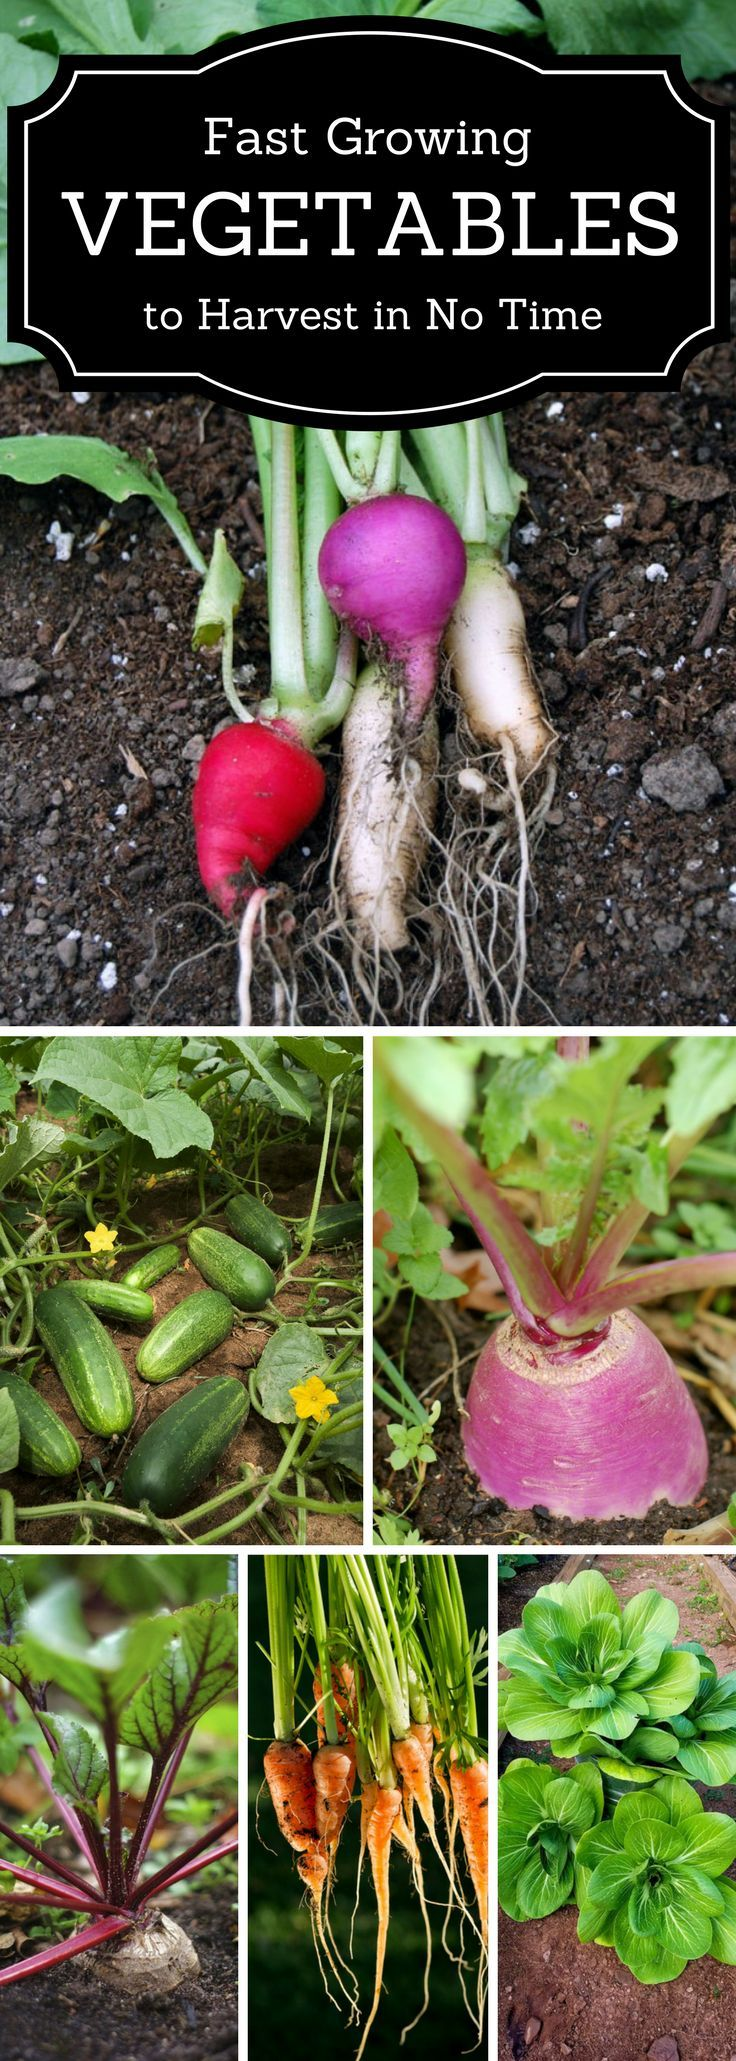 Top 10 Fast Growing Vegetables You Can Harvest In No Time 400 x 300